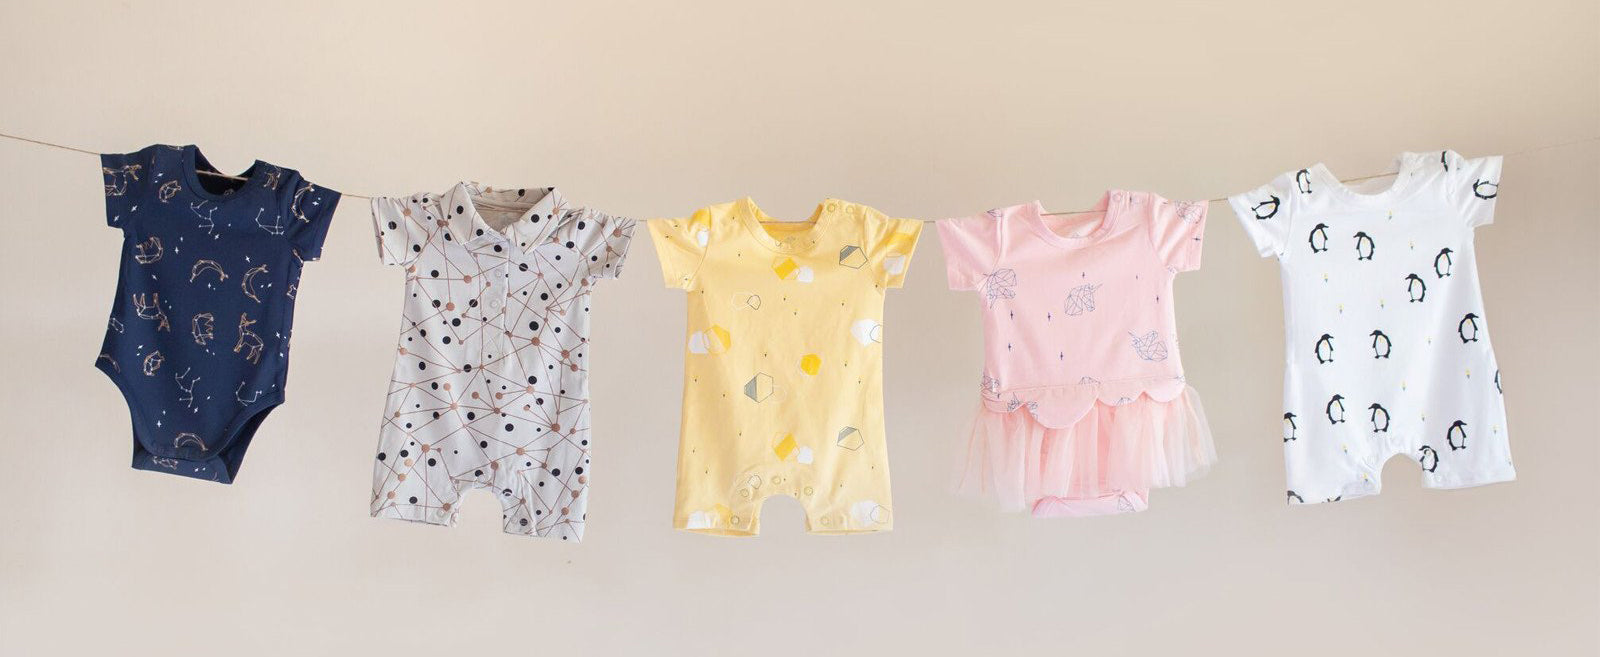 d7bab8b0eb66 Discover our wide range of high quality baby clothes made from comfortable  materials designed to make your little ones looking stylish and feeling  snug.